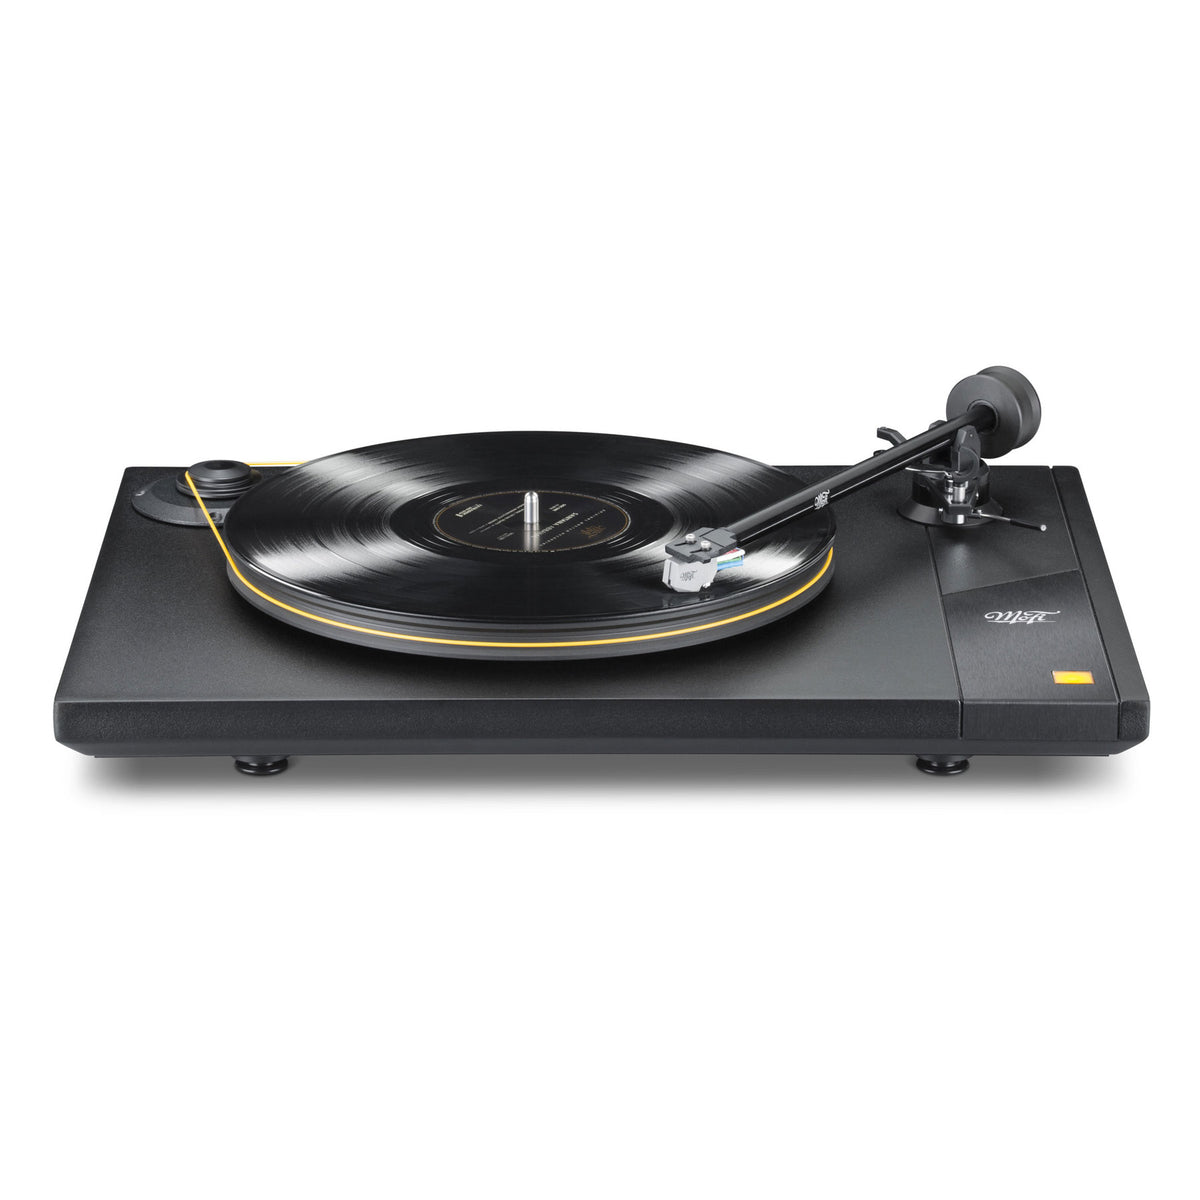 Mofi Electronics: StudioDeck+ Turntable w/ StudioTracker Cartridge